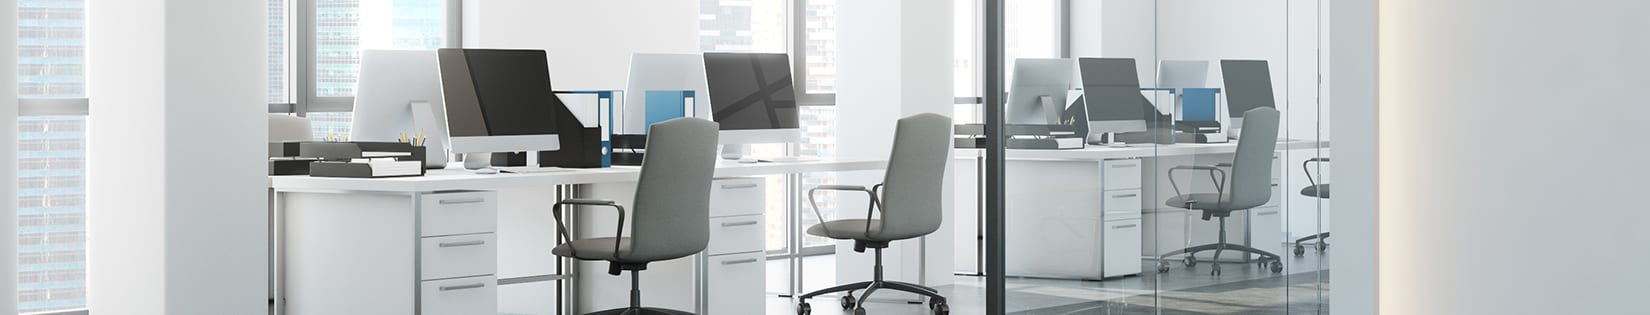 furniture installation and delivery ny